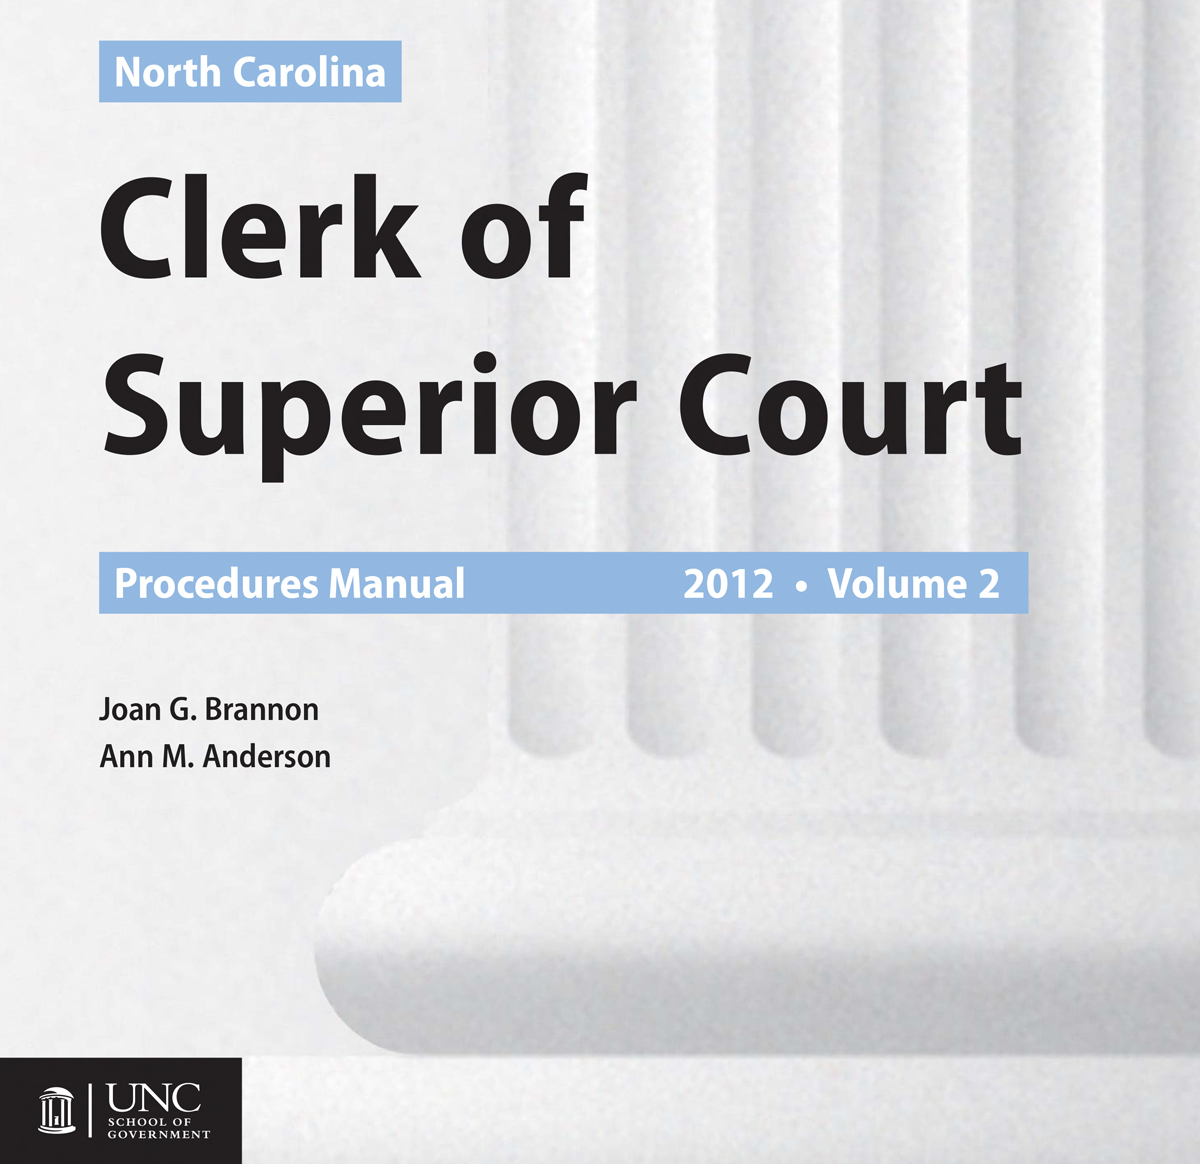 Cover image for North Carolina Clerk of Superior Court Procedures Manual, 2012 Edition: Volume Two (E-book)